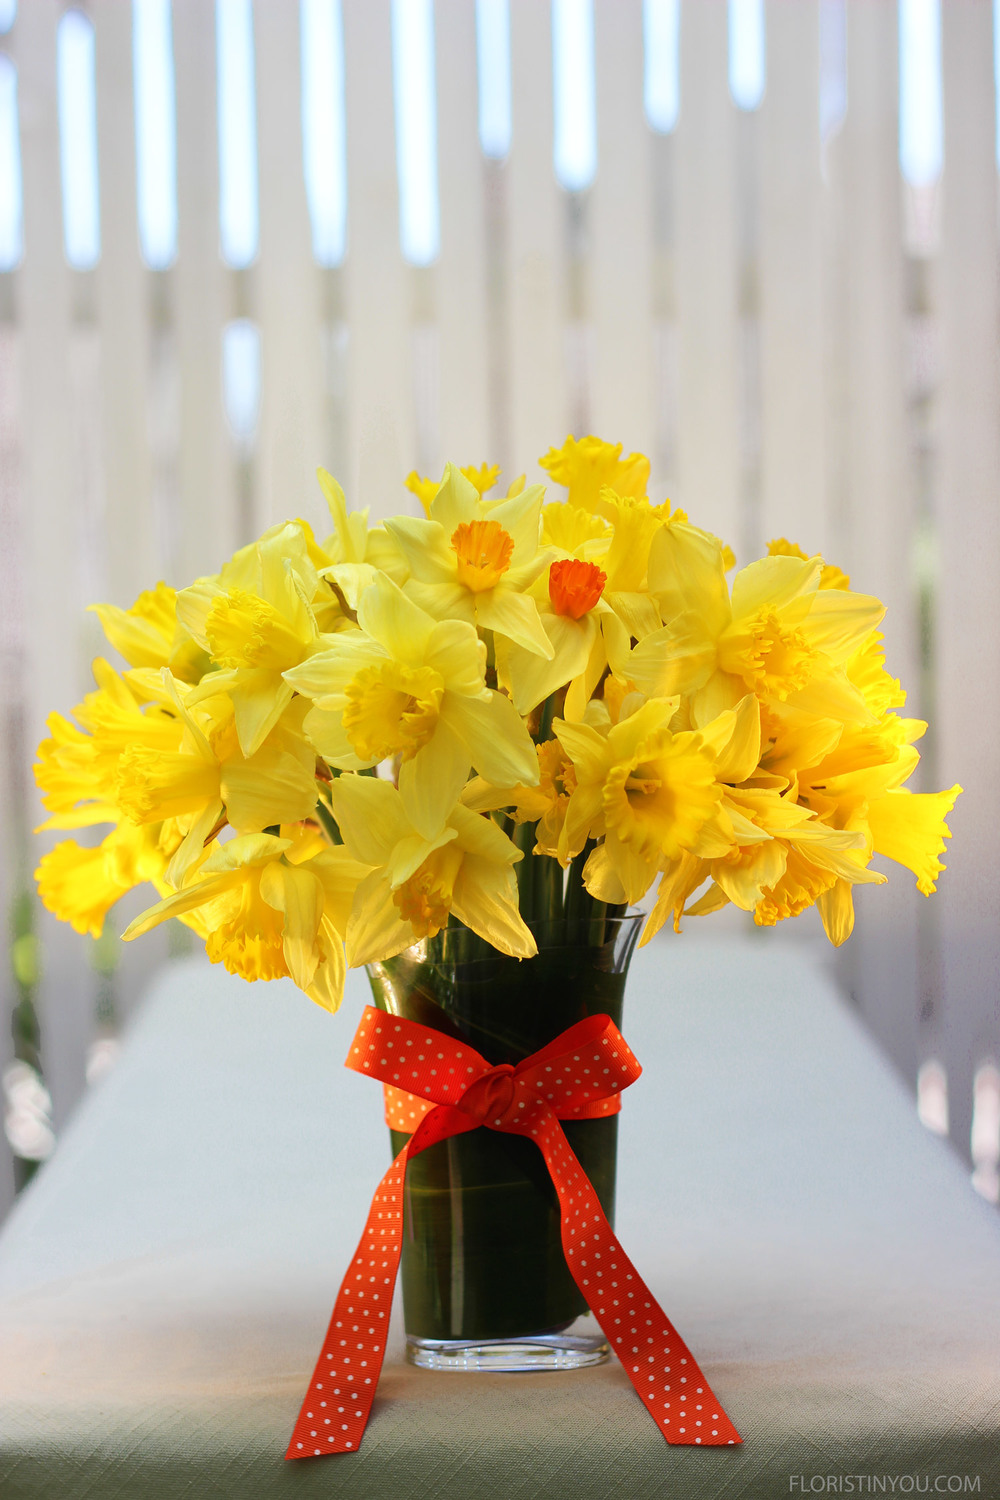 "Bunch O' Daffodils                     Normal   0           false   false   false     EN-US   JA   X-NONE                                                                                                                                                                                                                                                                                                                                                                              /* Style Definitions */ table.MsoNormalTable 	{mso-style-name:""Table Normal""; 	mso-tstyle-rowband-size:0; 	mso-tstyle-colband-size:0; 	mso-style-noshow:yes; 	mso-style-priority:99; 	mso-style-parent:""""; 	mso-padding-alt:0in 5.4pt 0in 5.4pt; 	mso-para-margin:0in; 	mso-para-margin-bottom:.0001pt; 	mso-pagination:widow-orphan; 	font-size:12.0pt; 	font-family:Cambria; 	mso-ascii-font-family:Cambria; 	mso-ascii-theme-font:minor-latin; 	mso-hansi-font-family:Cambria; 	mso-hansi-theme-font:minor-latin;}"